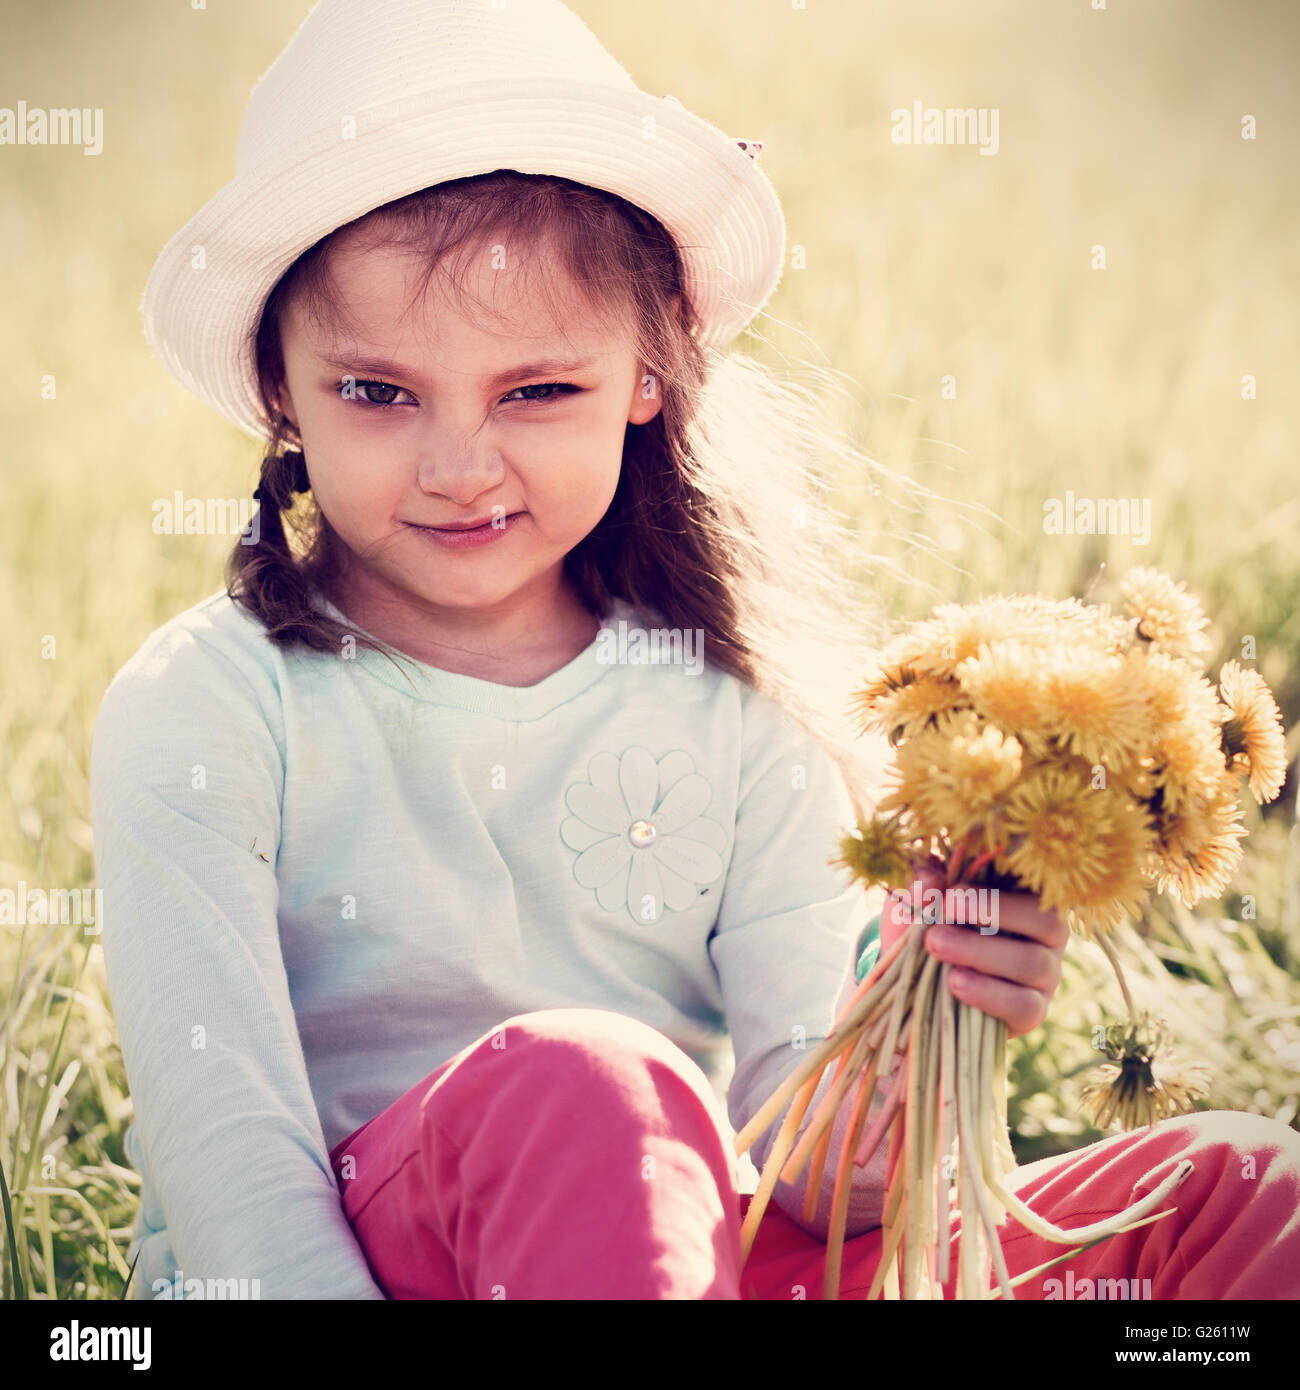 Funny grimacing kid girl in fashion hat sitting on the grass and holding yellow flowers. Toned closeup portrait - Stock Image